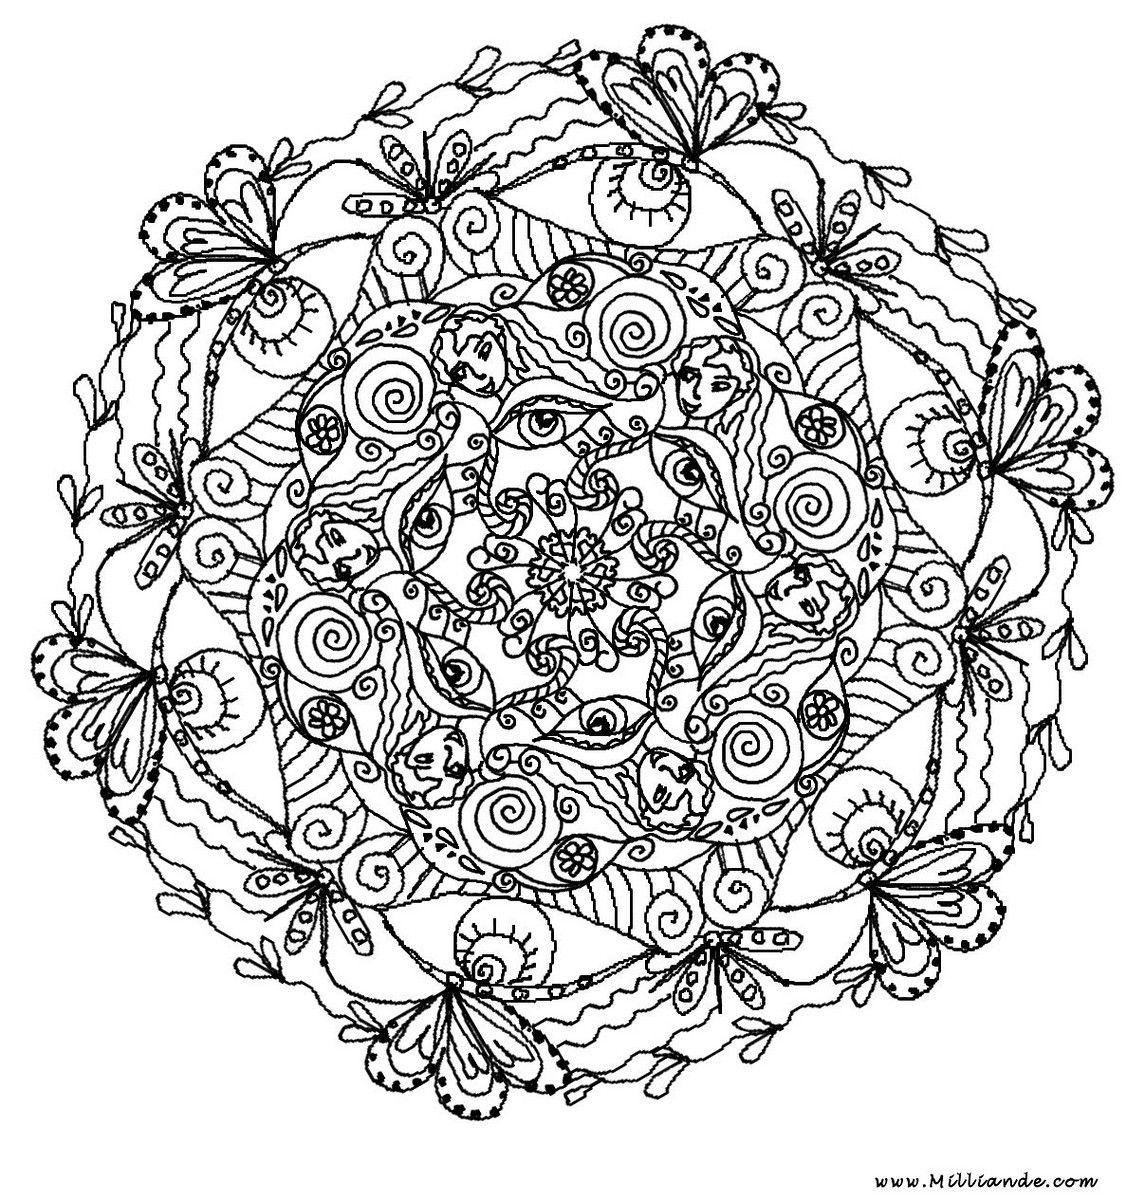 Printable Mandala Coloring Pages Adults Tagged With Advanced Mandala - Free Printable Mandala Coloring Pages For Adults